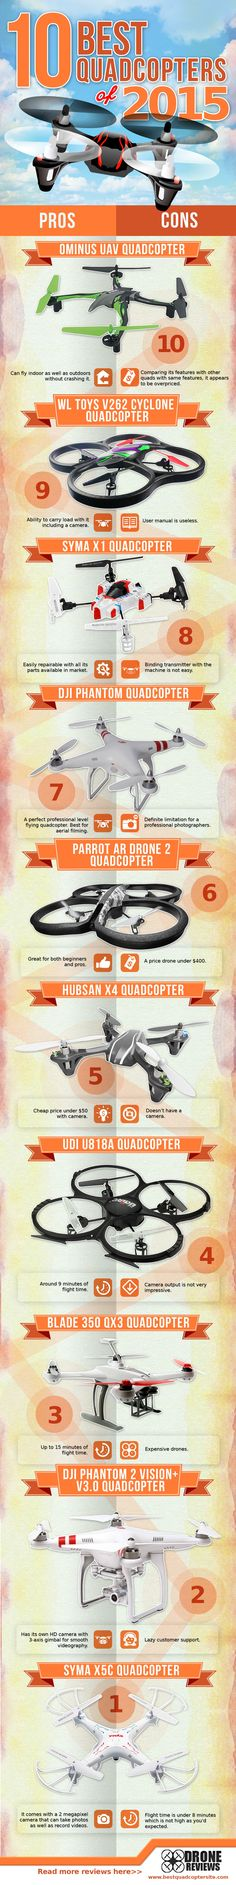 Drones, Quads or whatever else one calls them, flying Quadcopters can be a great hobby. The excitement of flying a machine, maneuvering it in the air, taking aerial photos and making videos from the top without having to move out of the park bench, are all the perks of this hobby. Read here http://bestquadcoptersite.com